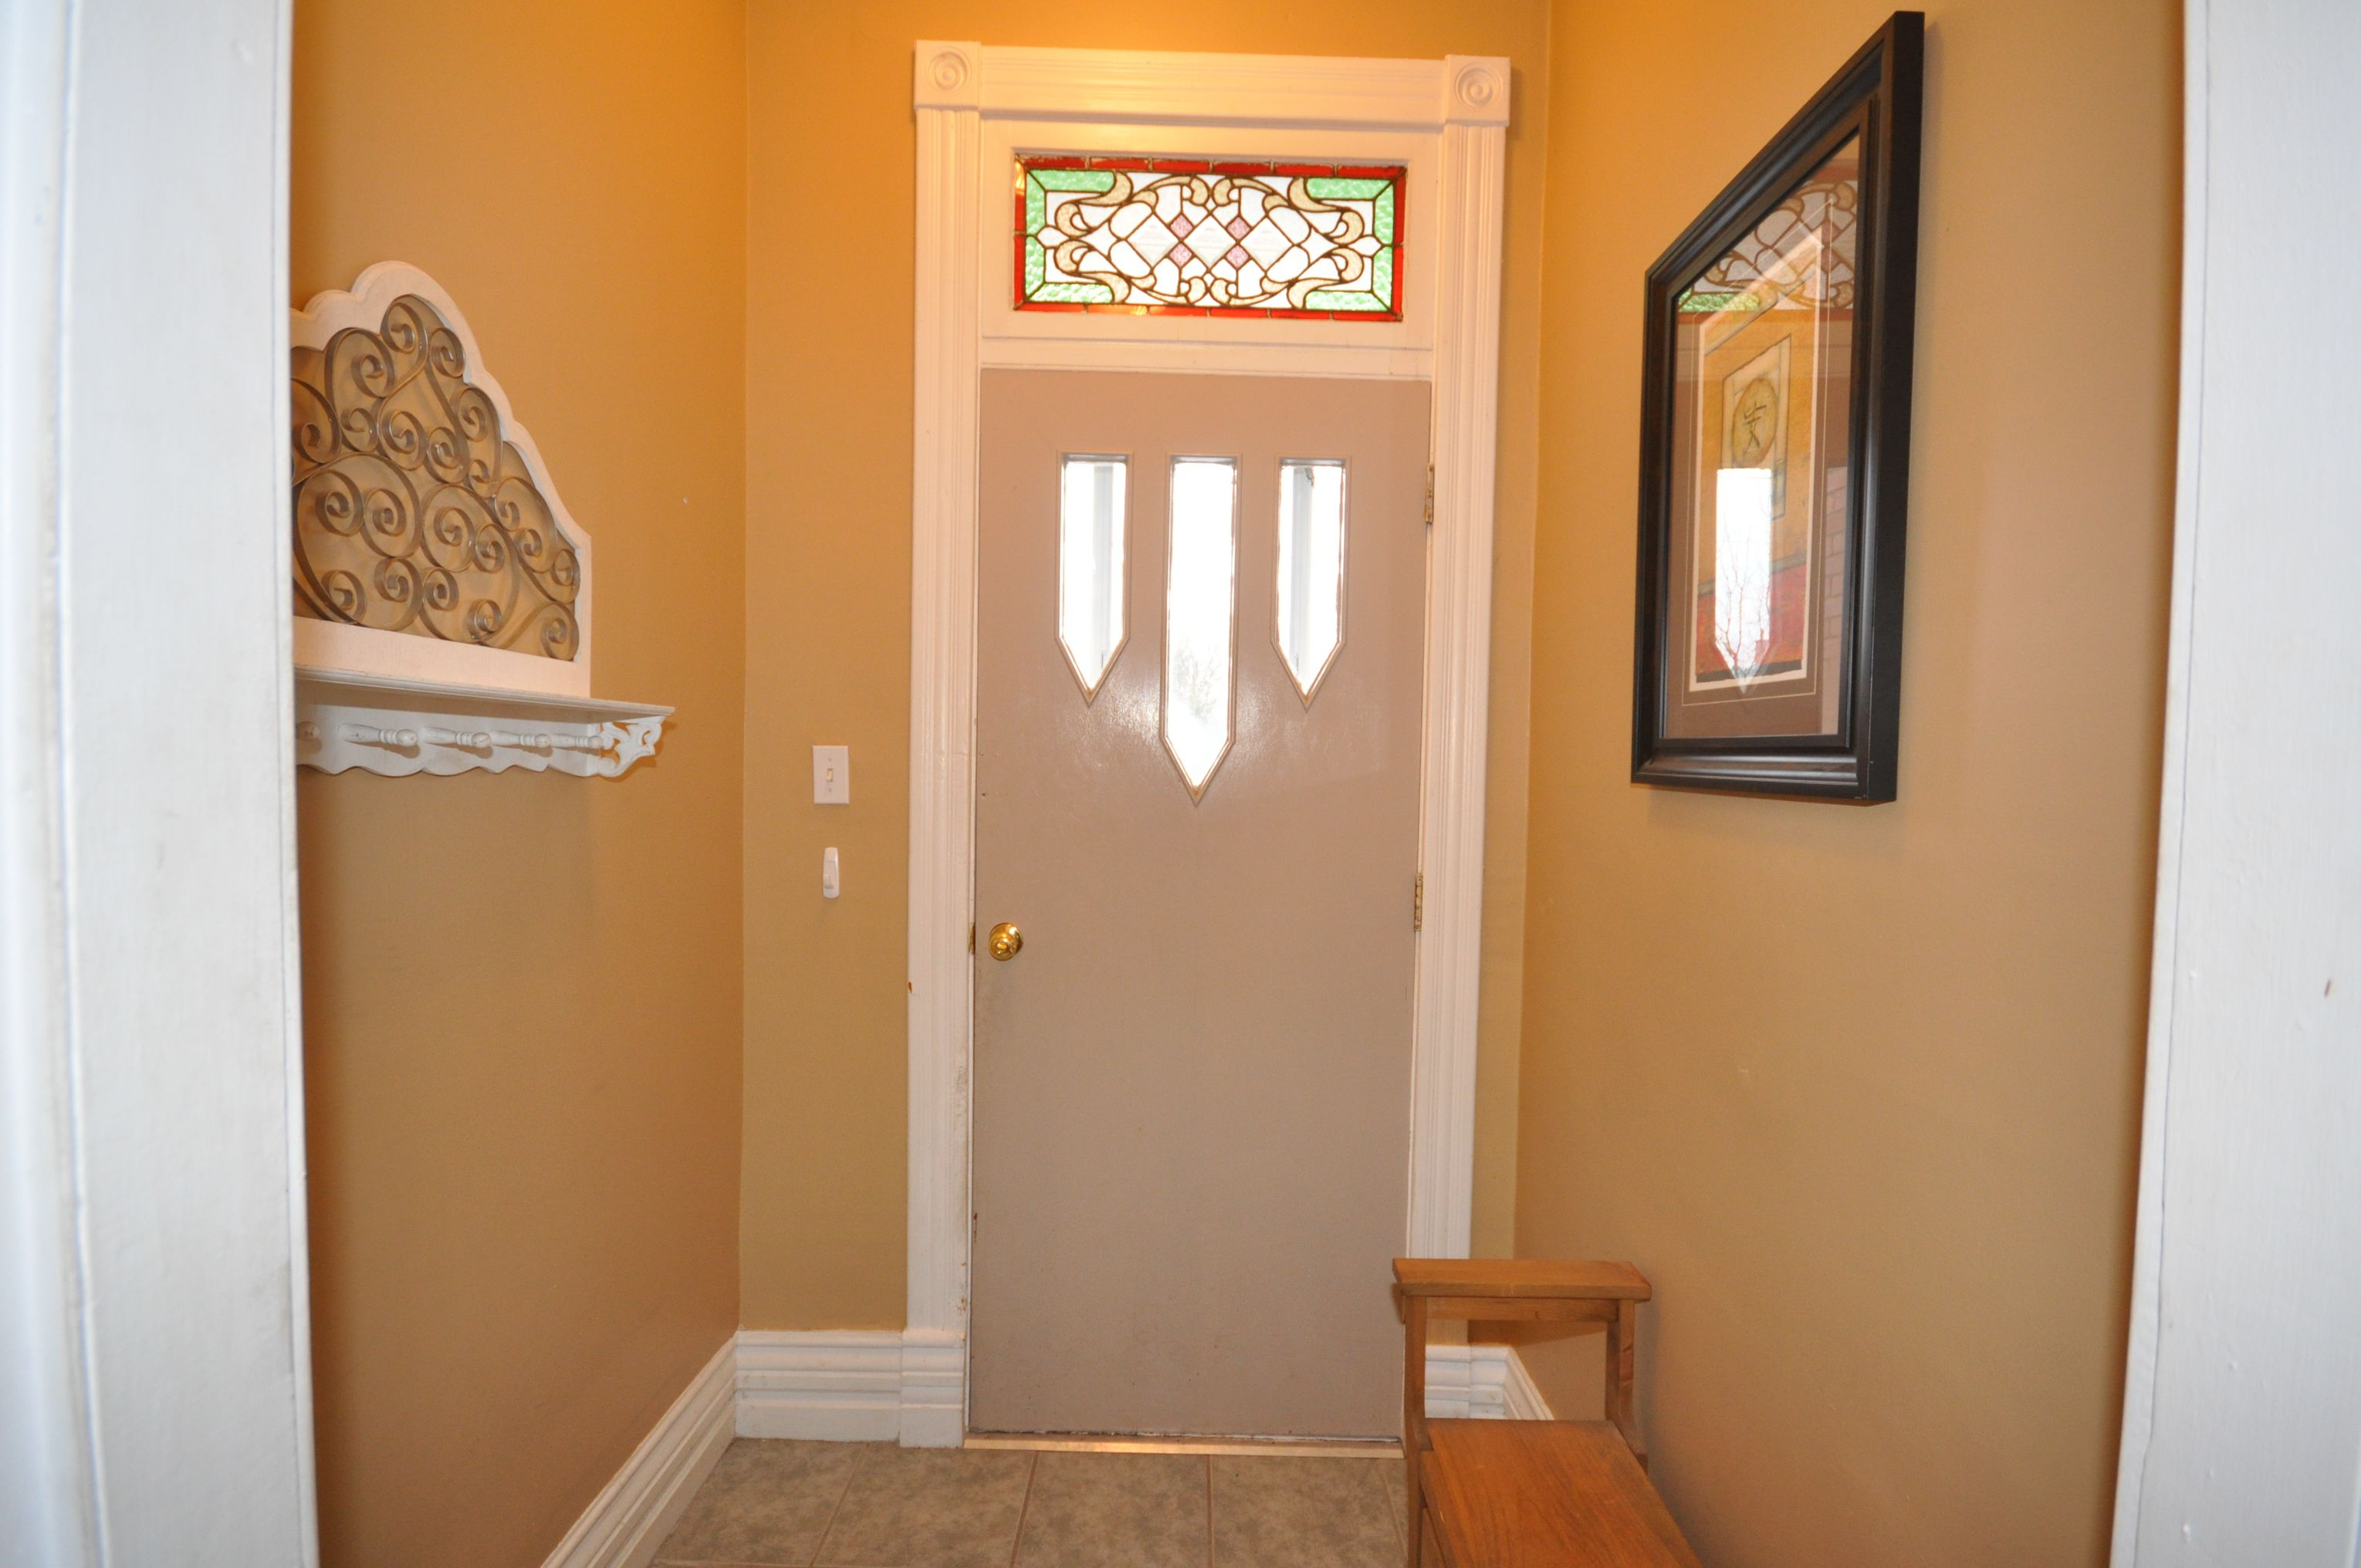 Ceramic foyer & stained glass window